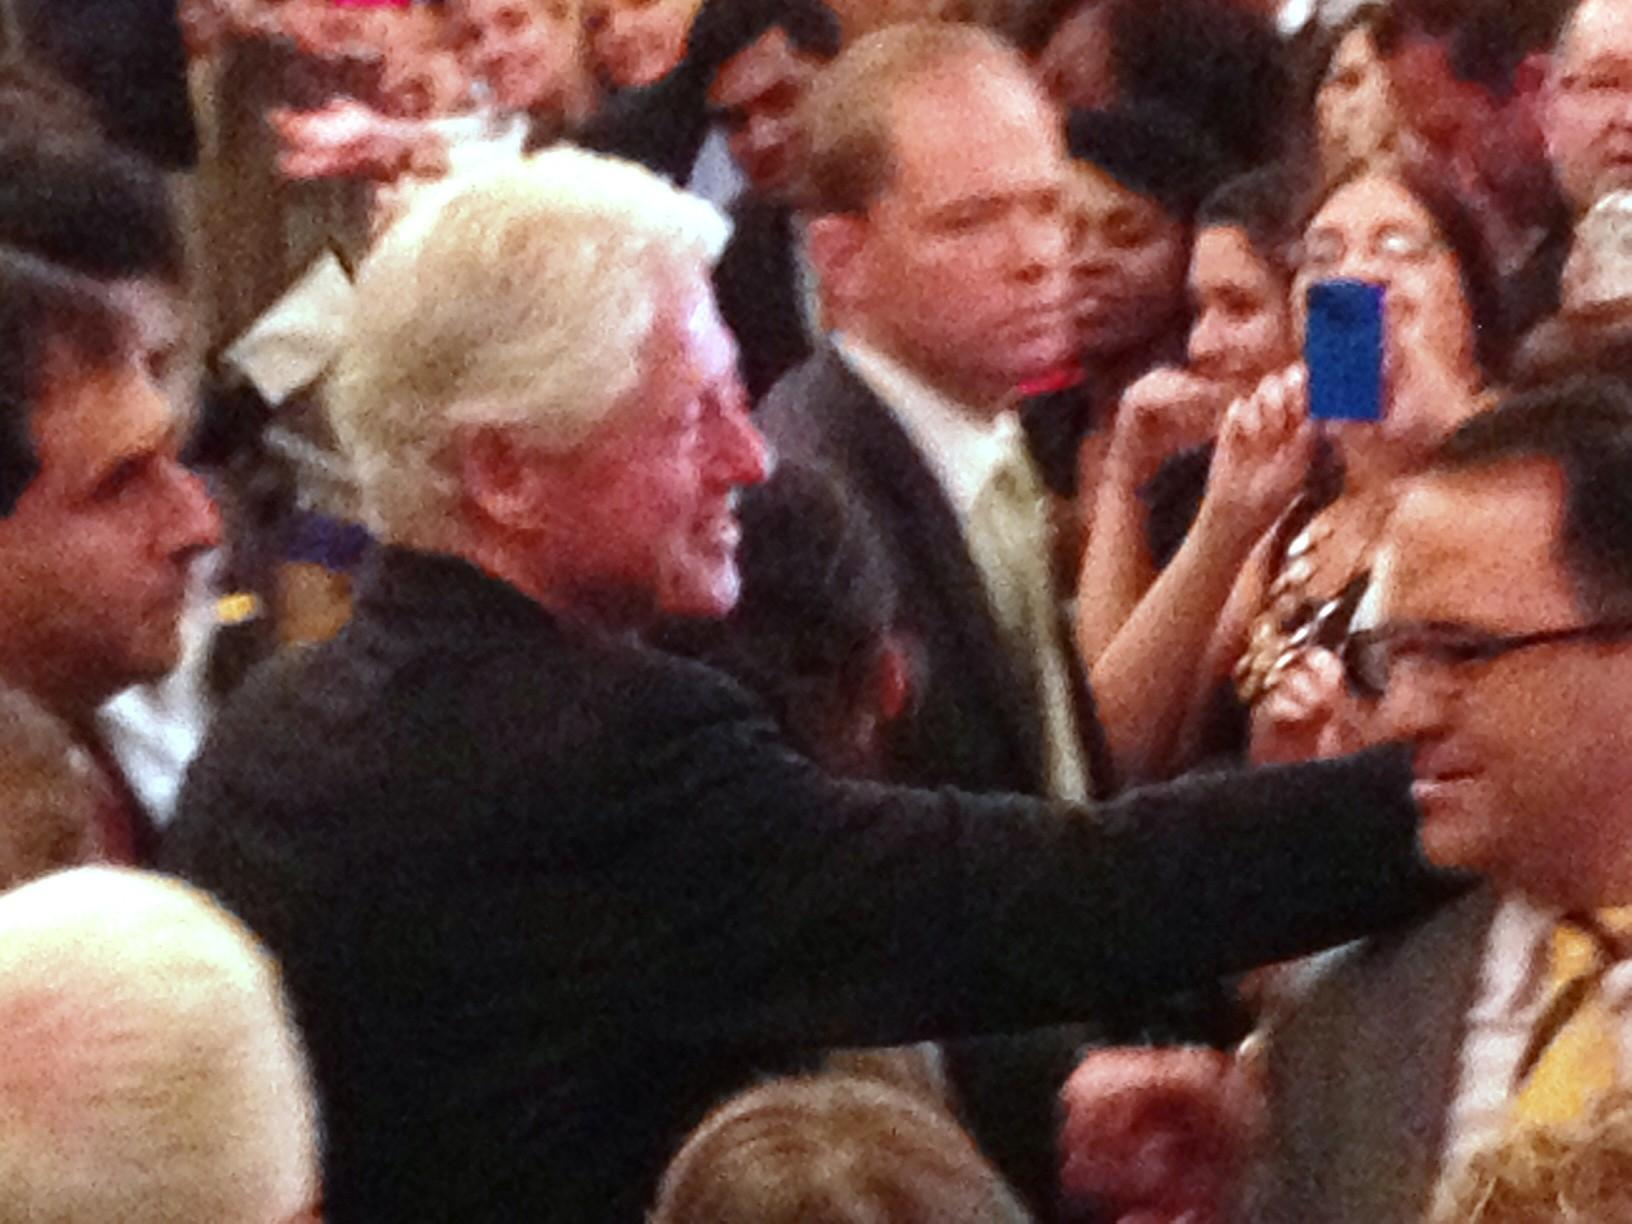 Former President Bill Clinton at the Omni Hotel in New Haven, CT, Sept. 2, 2014.